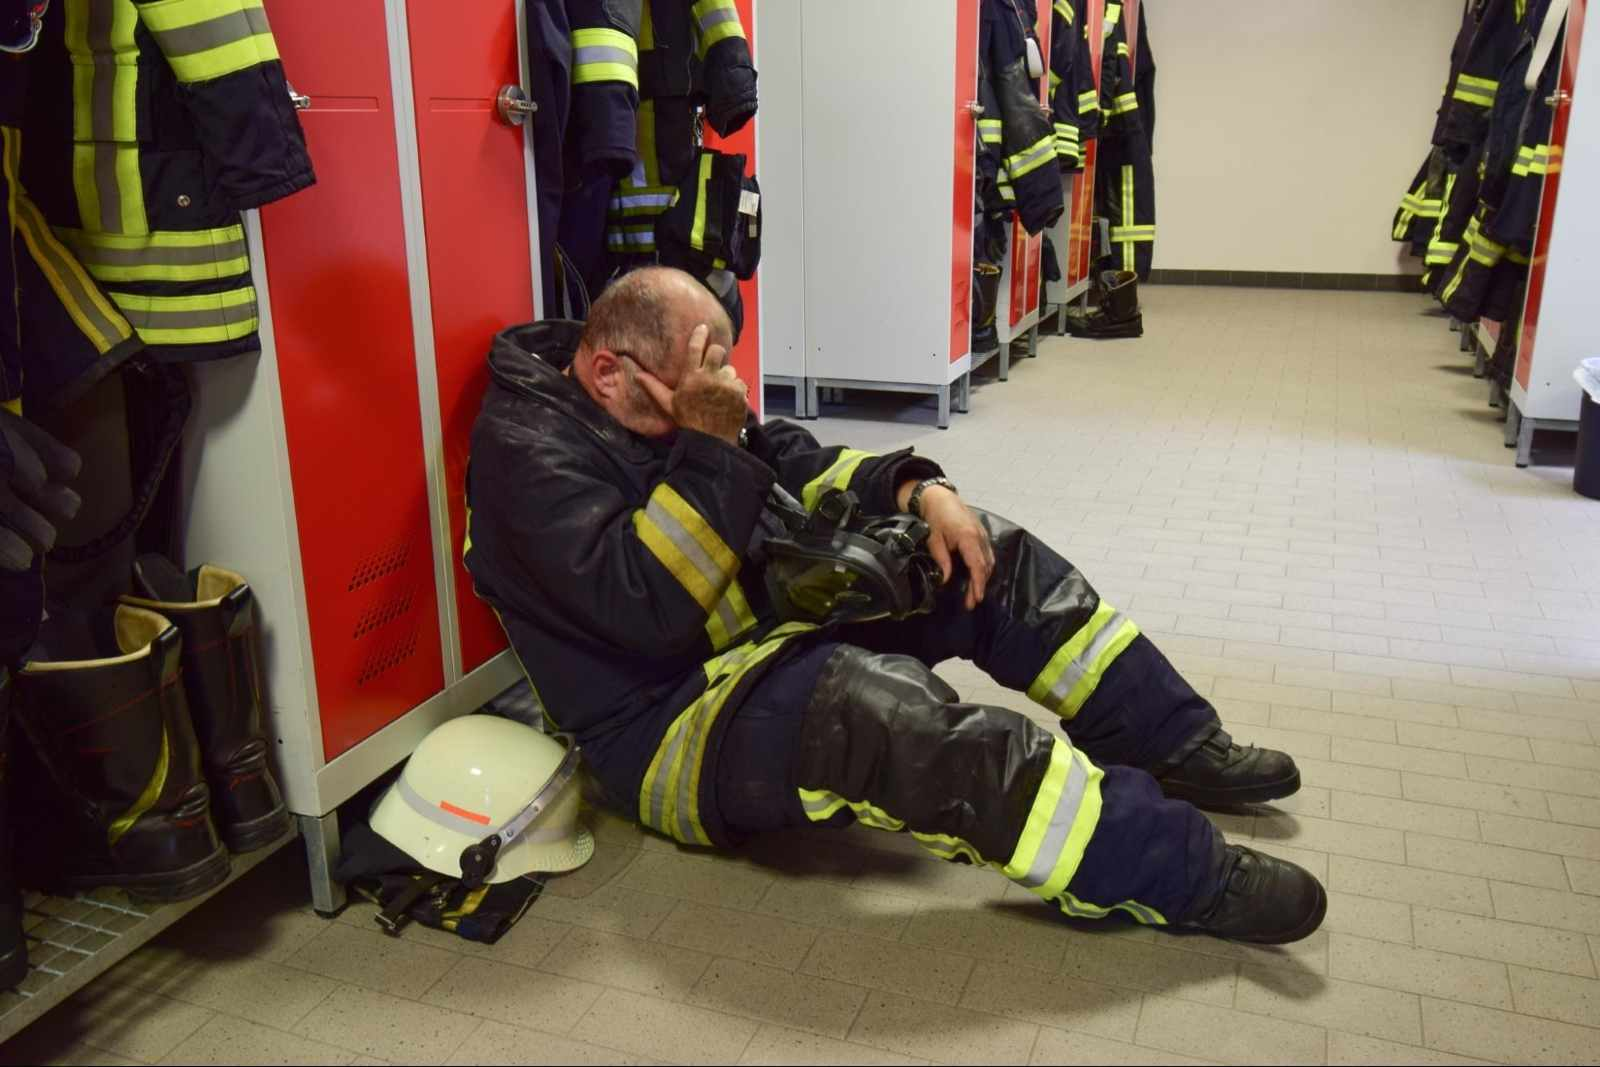 how to rehydrate: Fireman sitting on the floor of a locker room